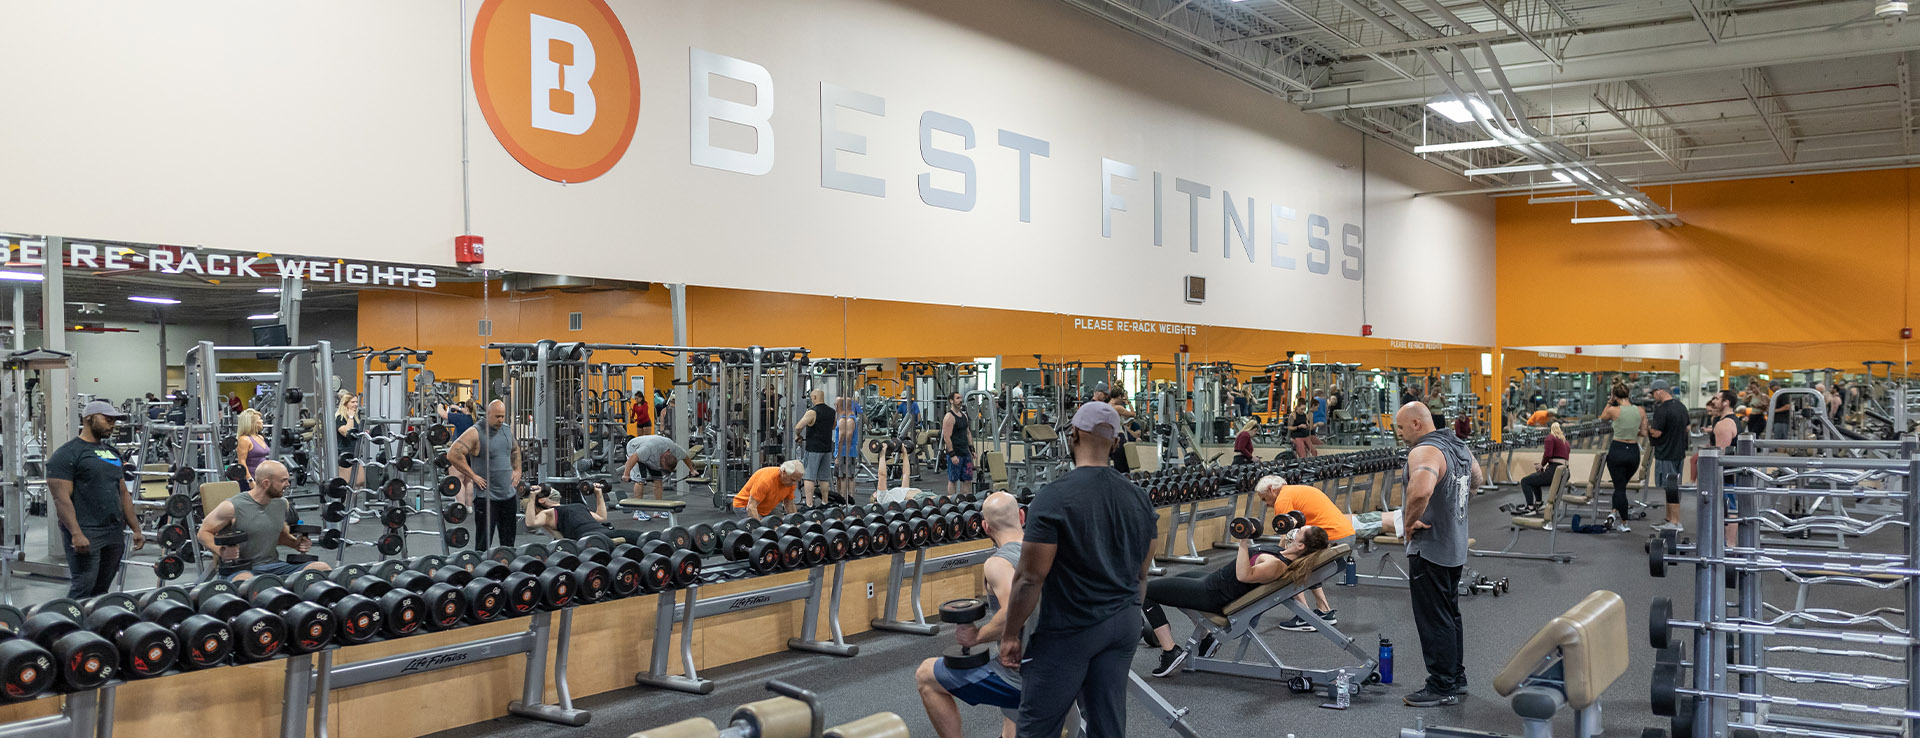 spacious gym and people working out in it